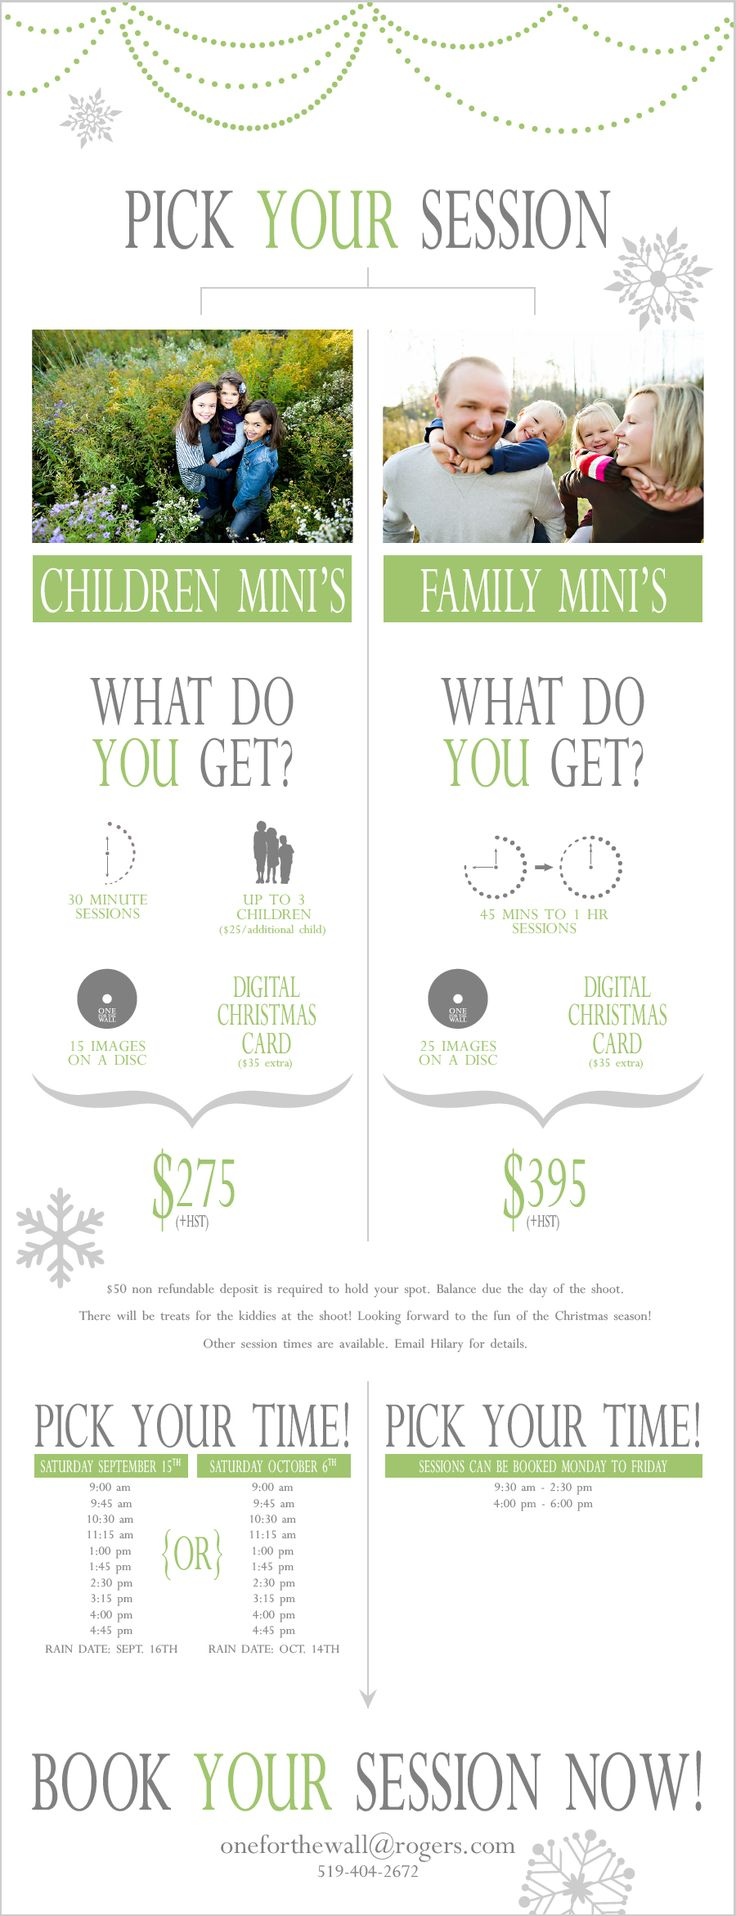 Christmas Mini Sessions Info Graphic www.thedesigntruth.com Like & Repin. Noelito Flow. Noel songs. follow my links http://www.instagram.com/noelitoflow